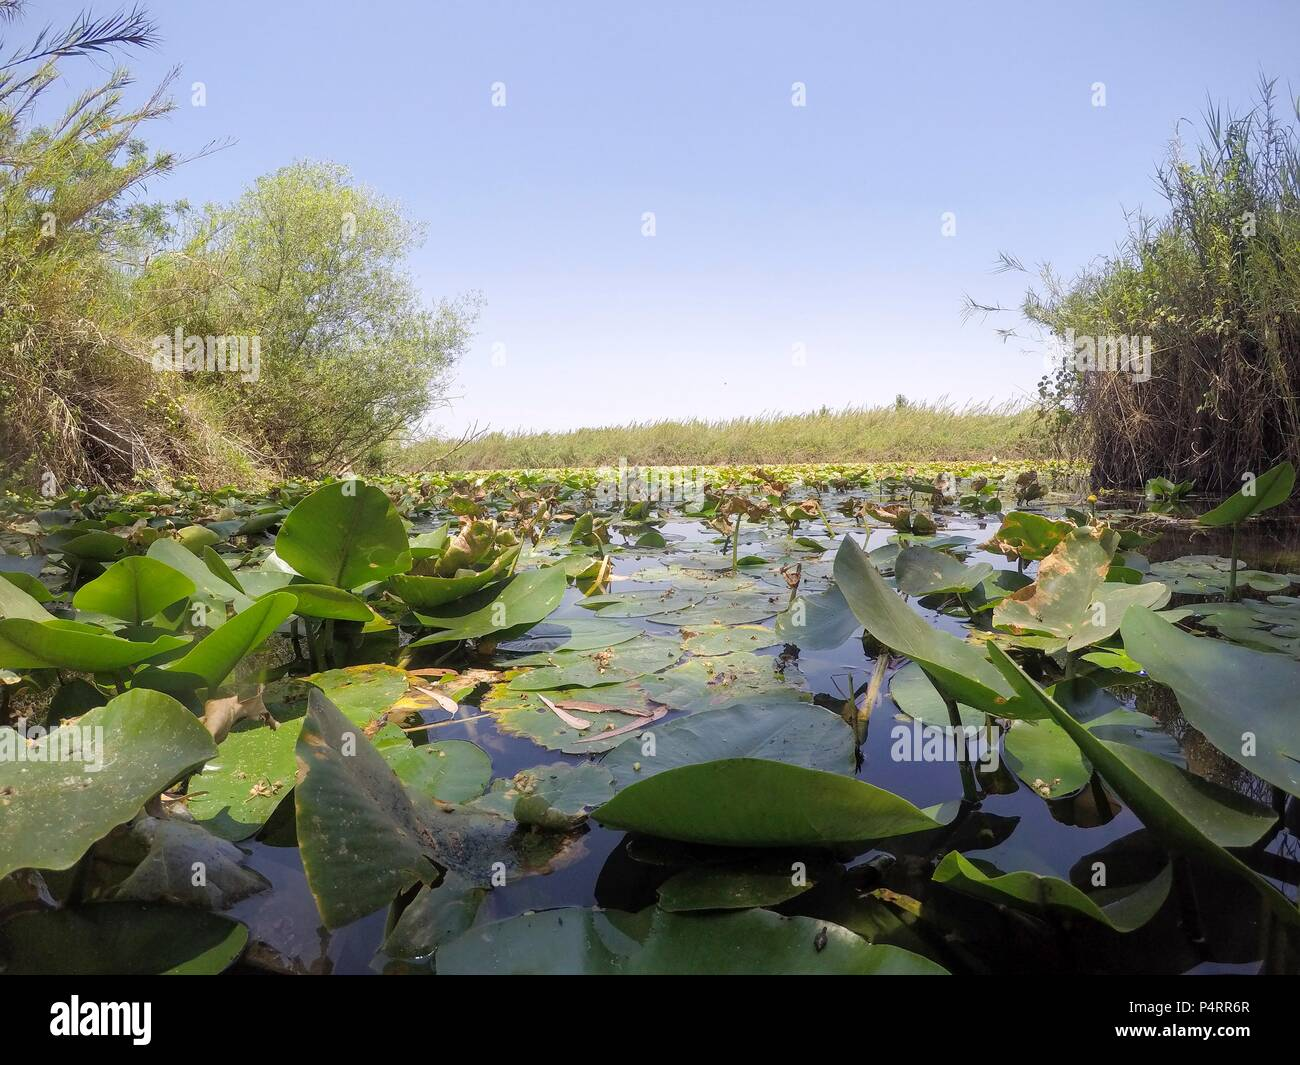 Yellow waterlily (Nuphar lutea). This aquatic plant is also known as the cow lily, and yellow pond-lily. Photographed in a natural pool in Israel in September. - Stock Image